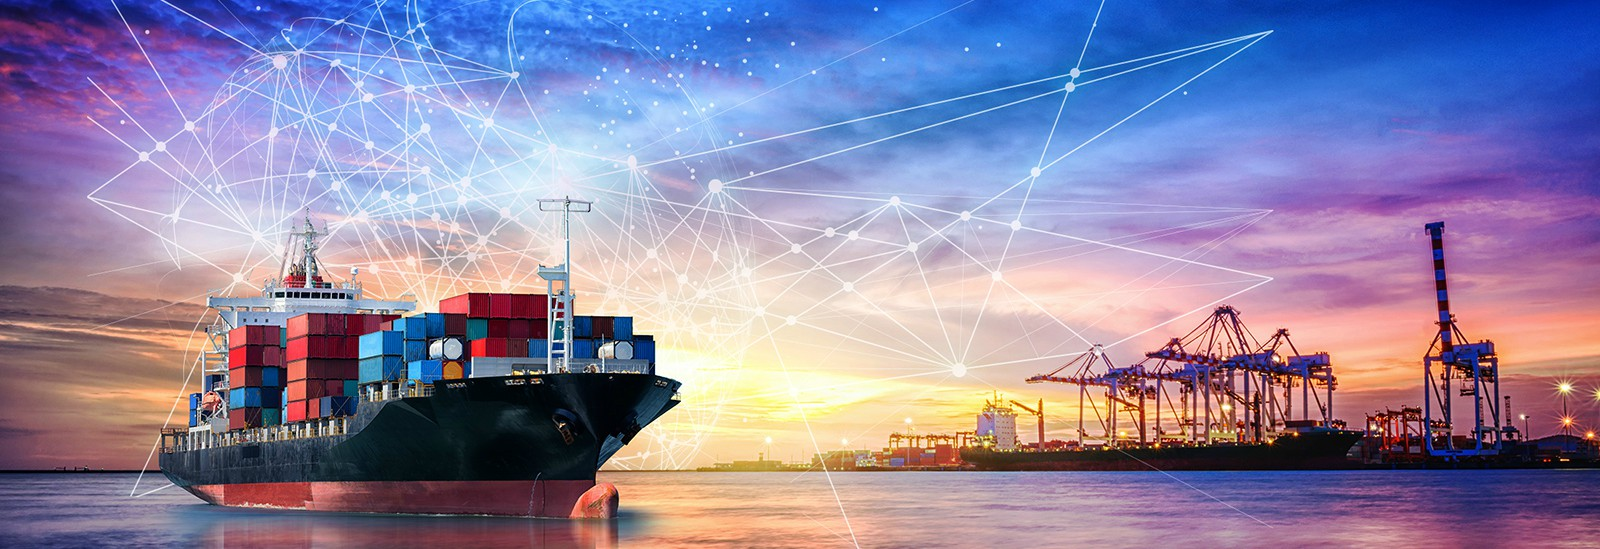 CROP Transforming Maritime Supply Chains - Stock Image